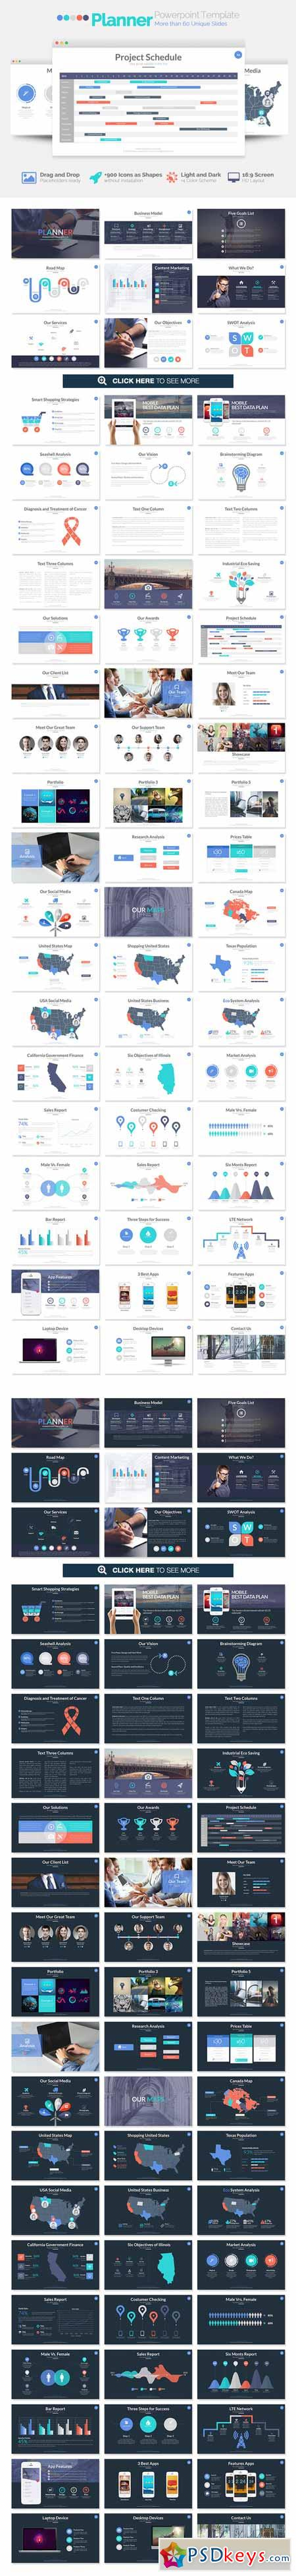 Planner Powerpoint Template 247253